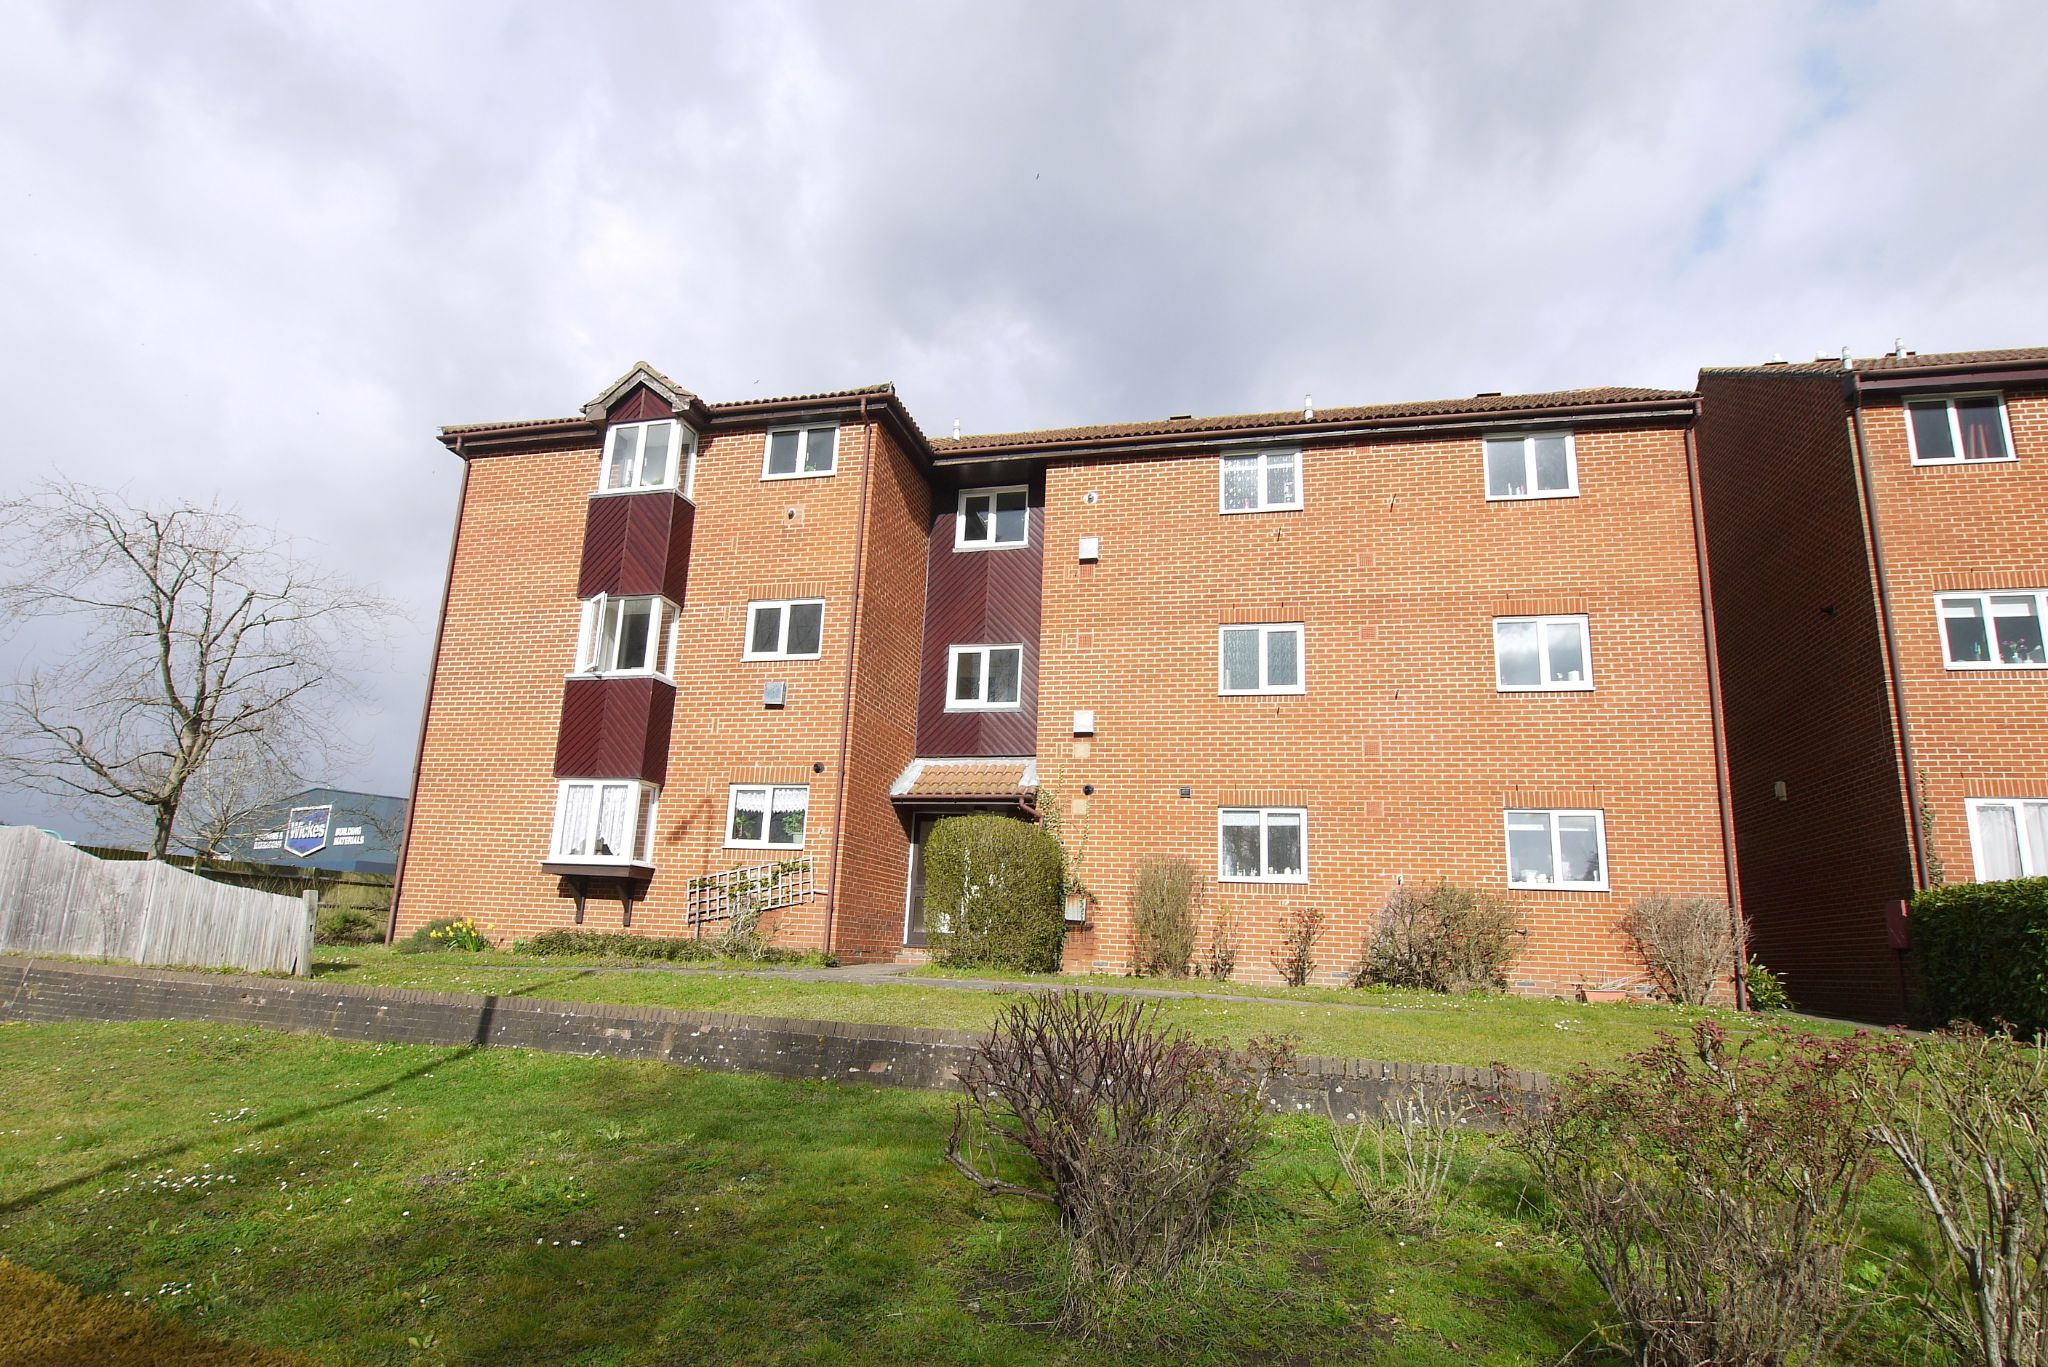 2 bedroom flat flat/apartment For Sale in Sevenoaks - Photograph 1